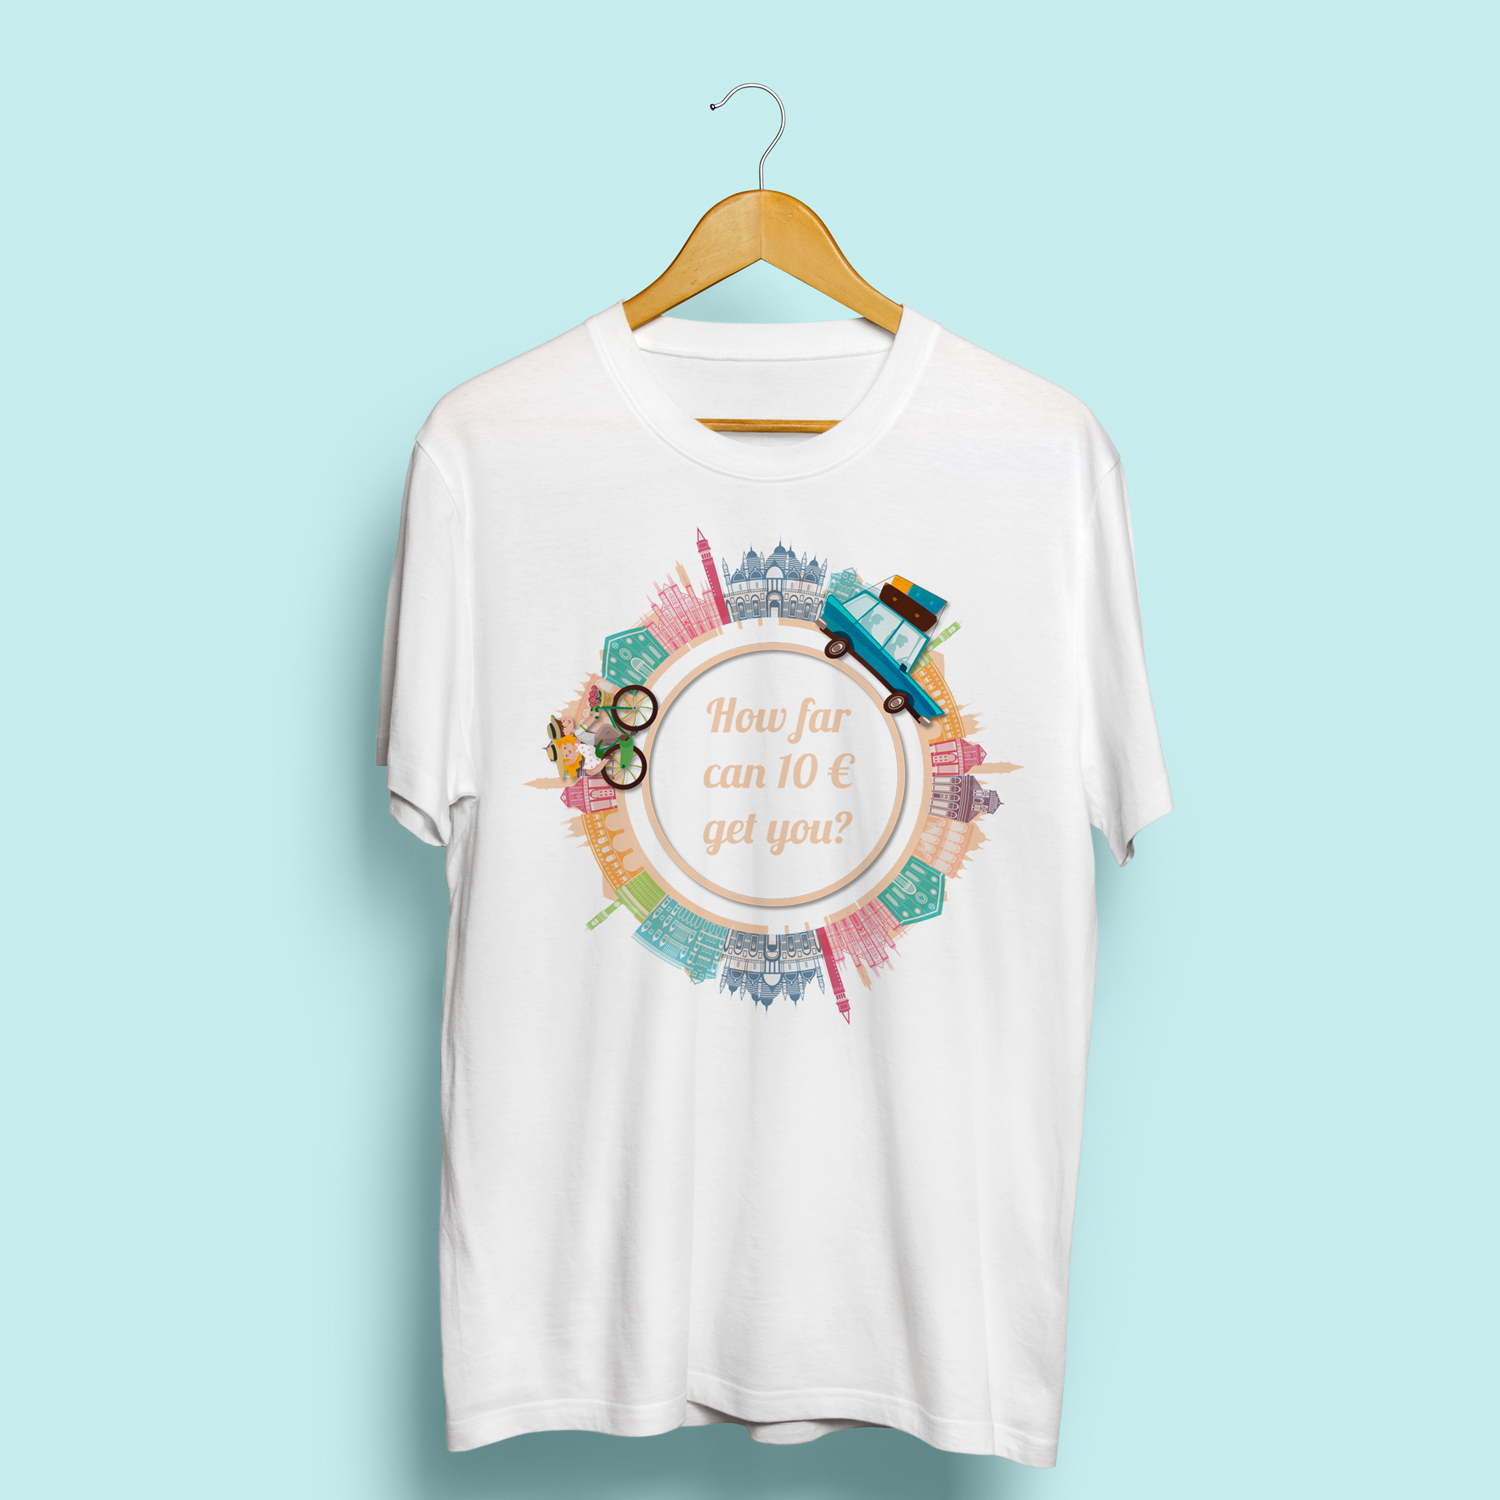 Playful Modern T Shirt Design For Paolo Pinzuti By Ibirds